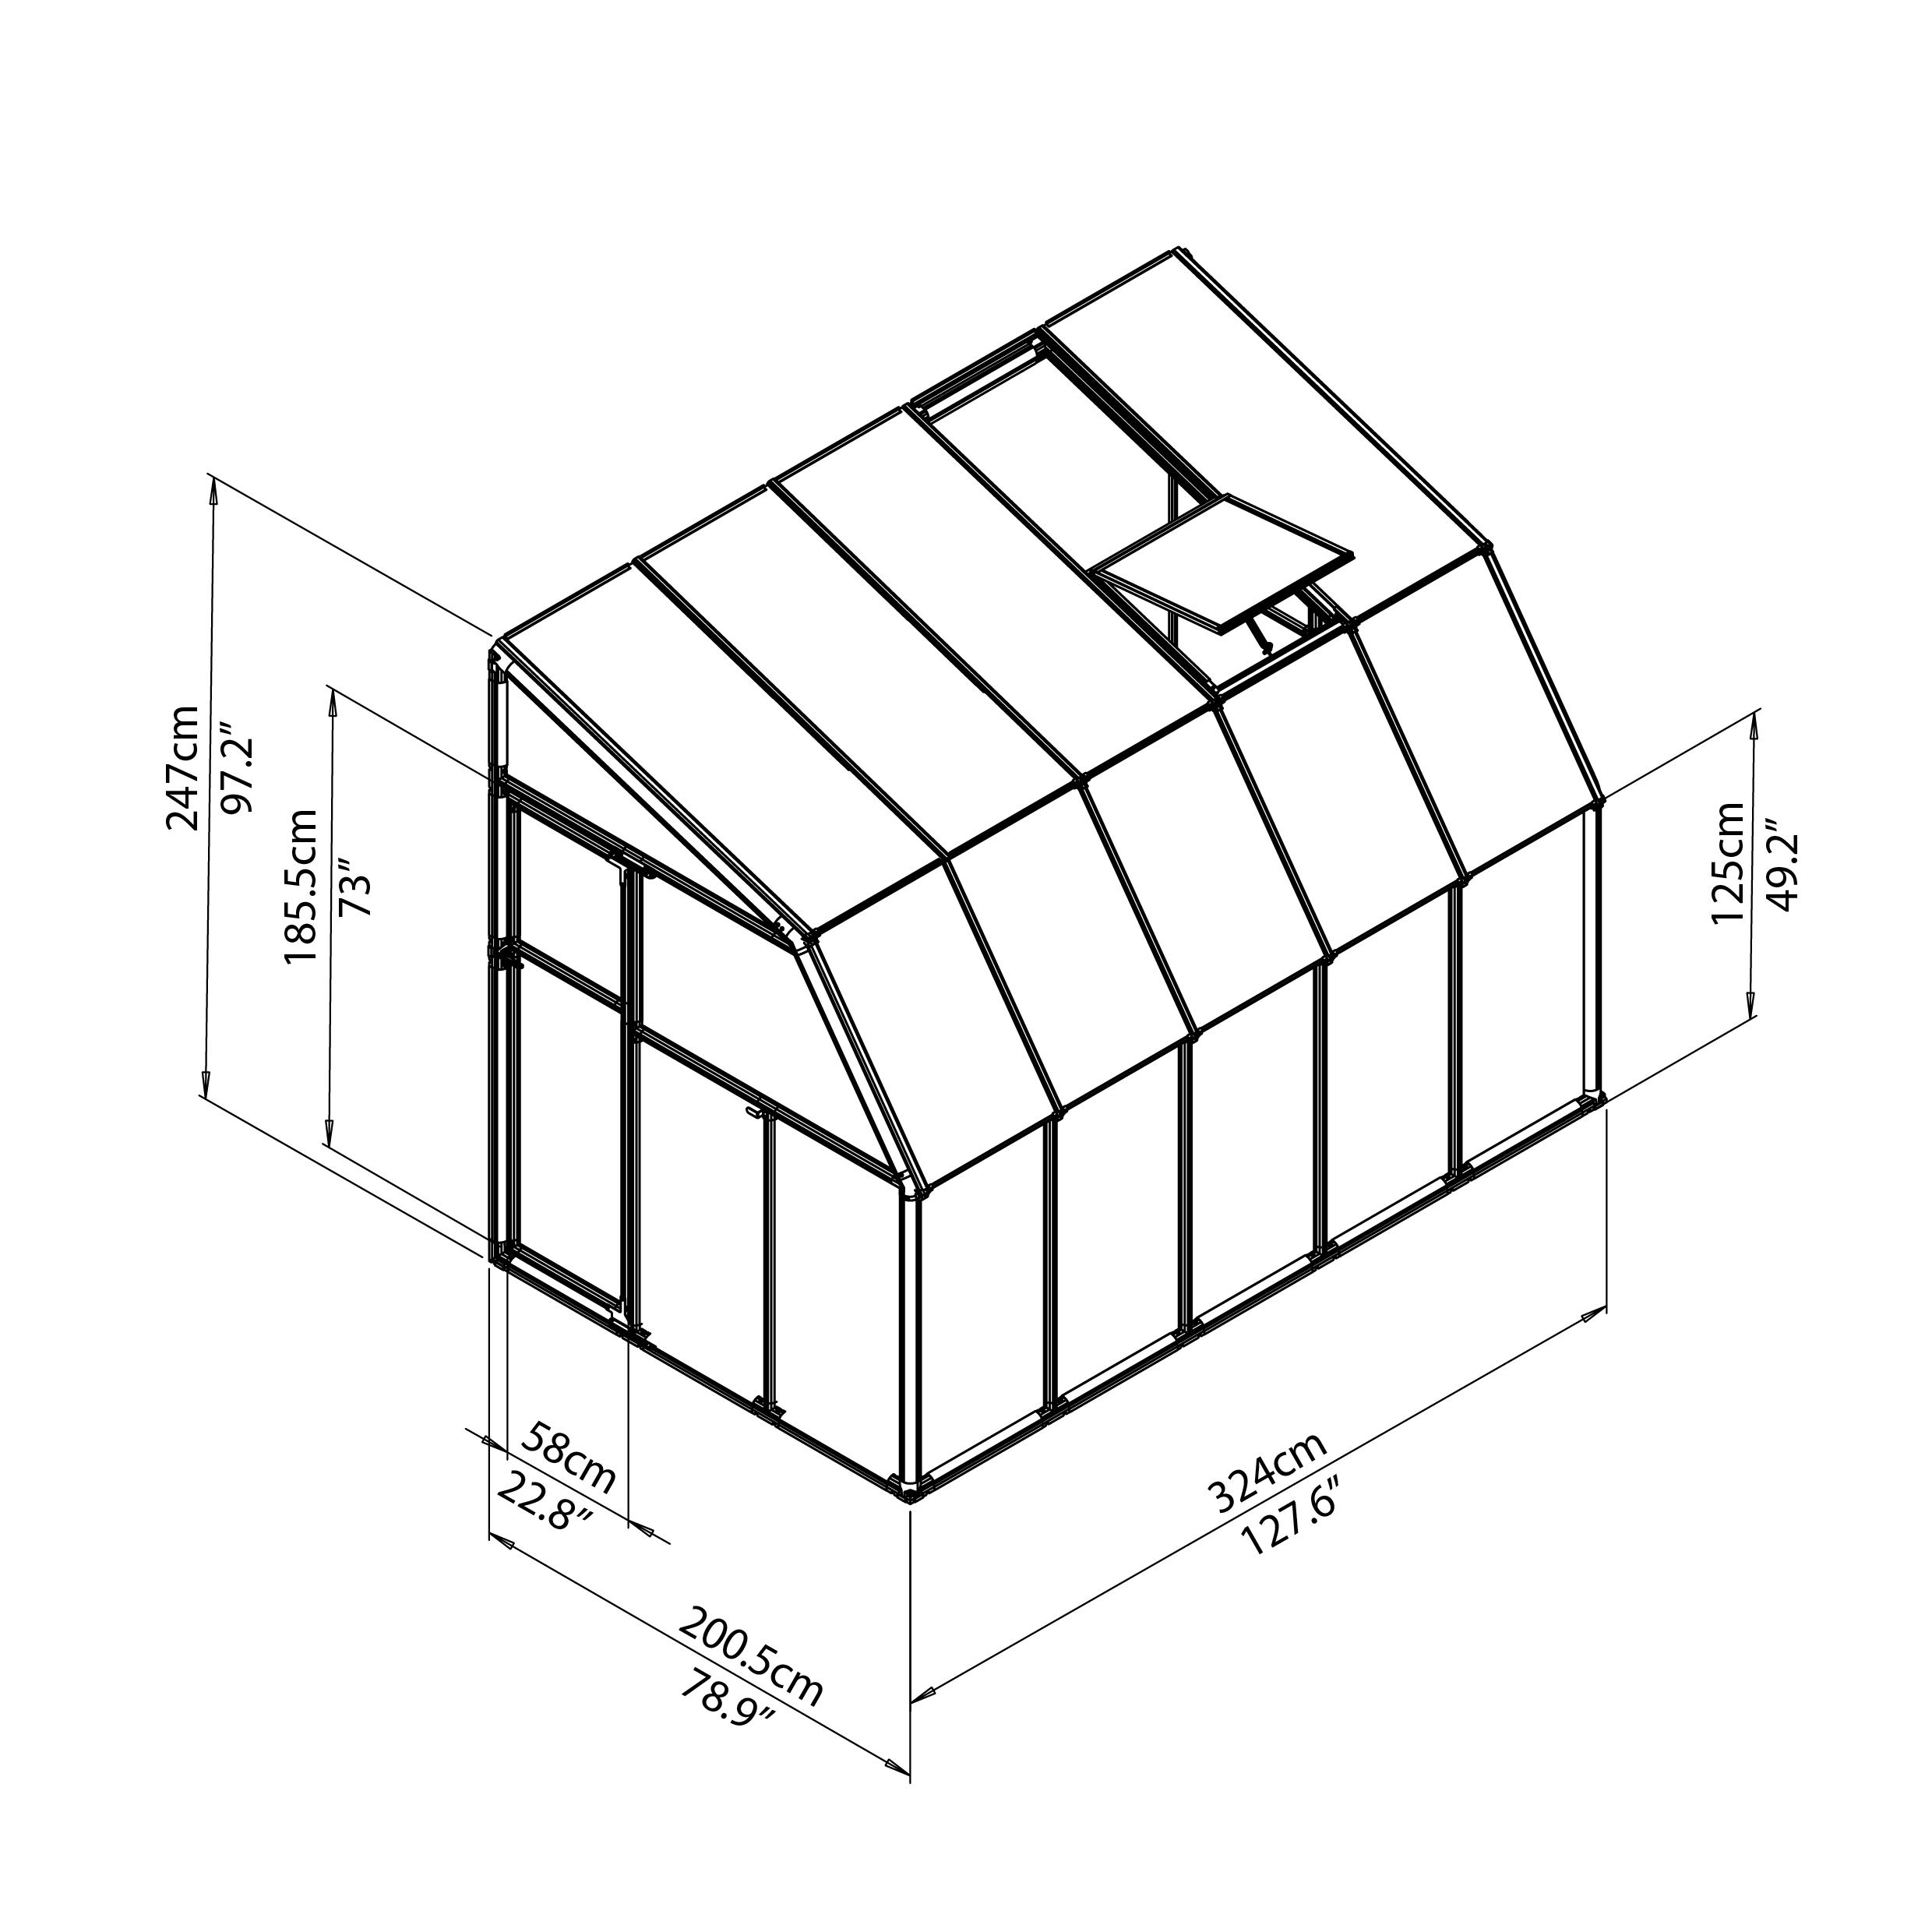 rion-greenhouses-sunroom-6x10-drawing-isoview.jpg